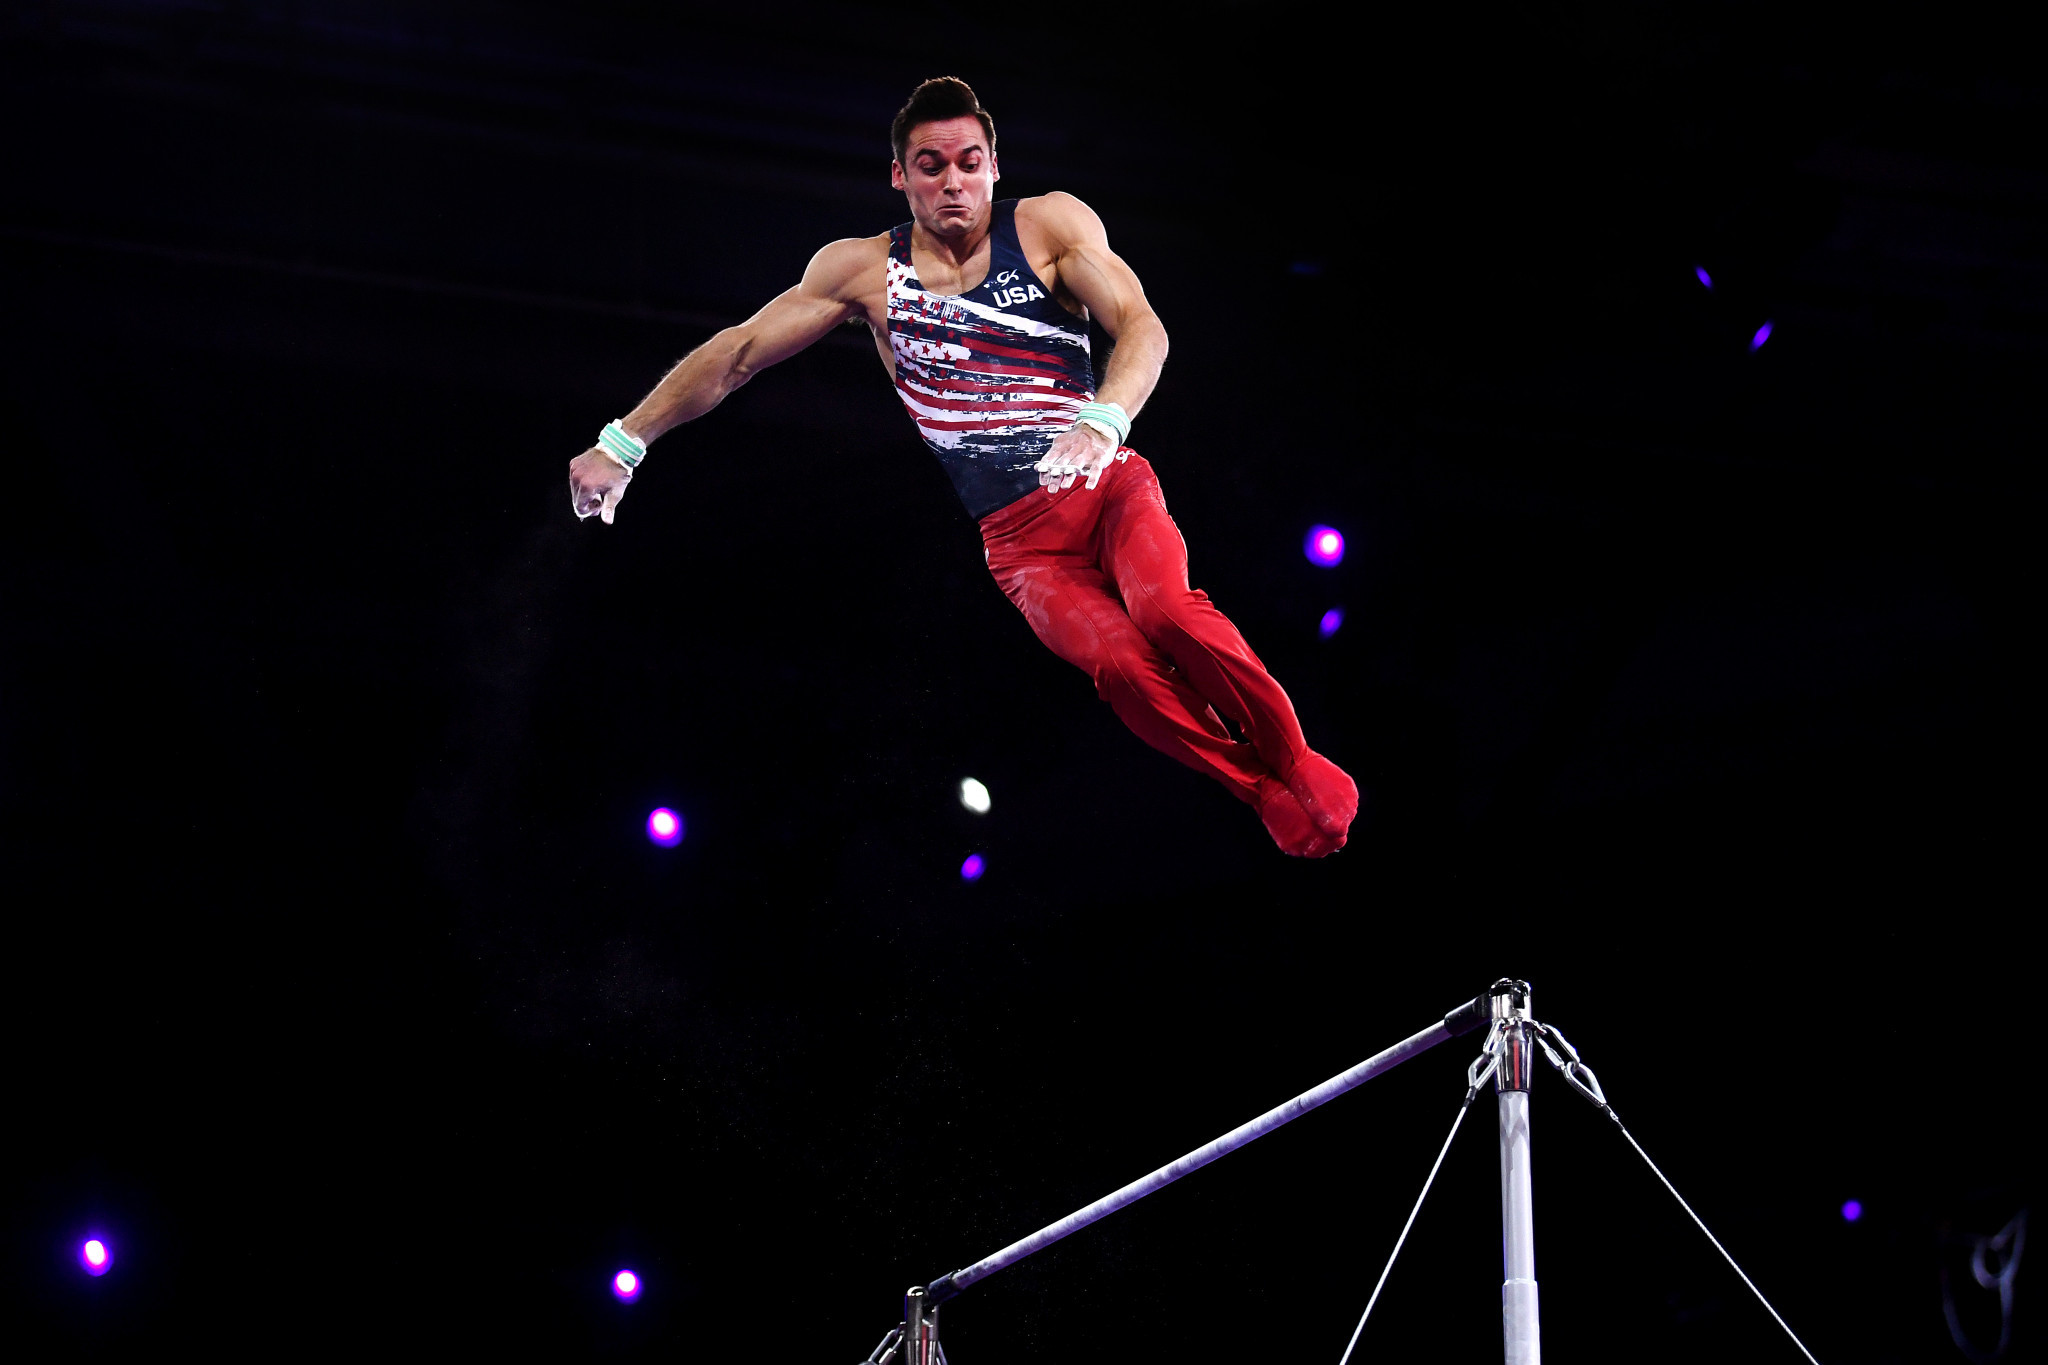 USA Gymnastics has announced Olympic team trials for Tokyo 2020 will now take place from June 24 to 27 2021 ©Getty Images